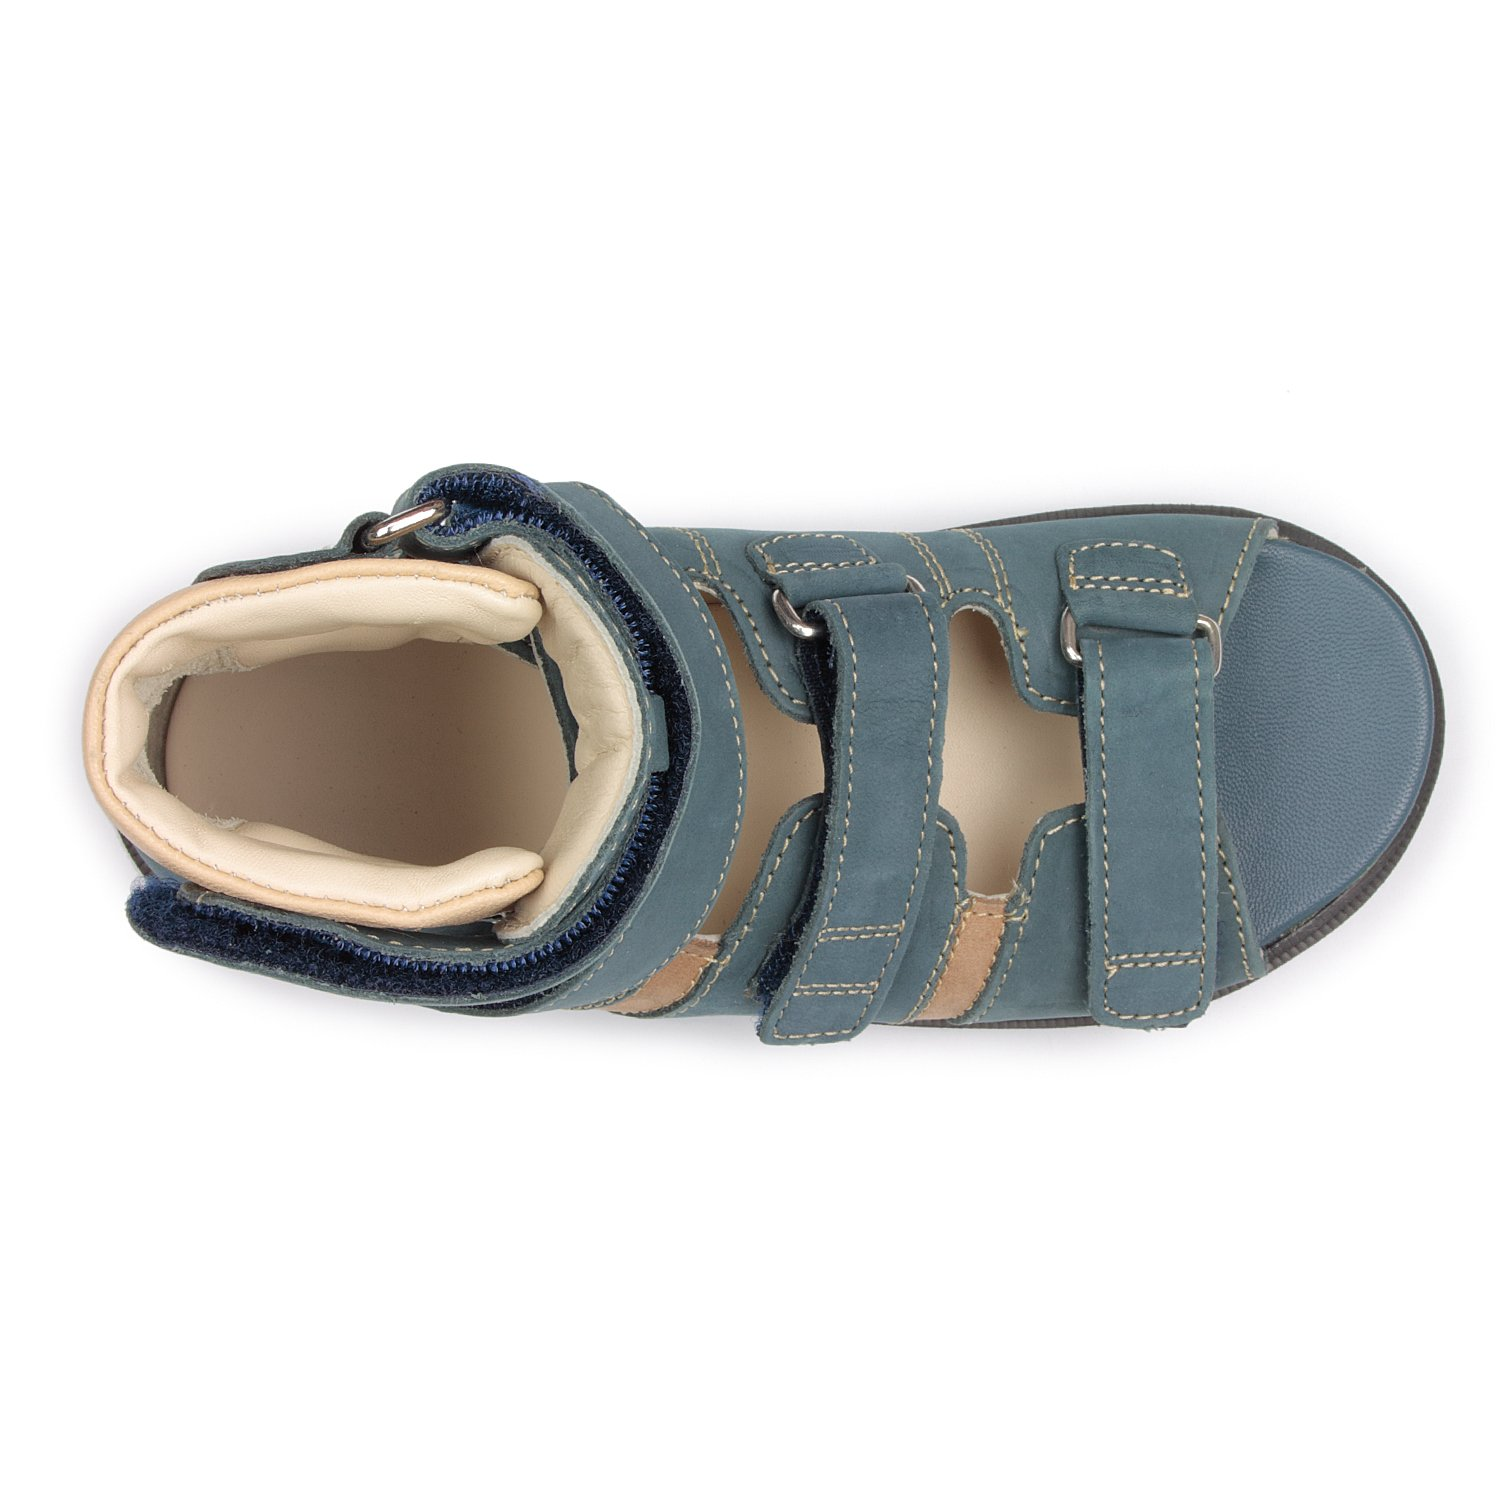 Memo Basic 1CH Suede CP Kids AFO Brace Sandal, 12.5 Little Kid M (30) by Memo (Image #6)